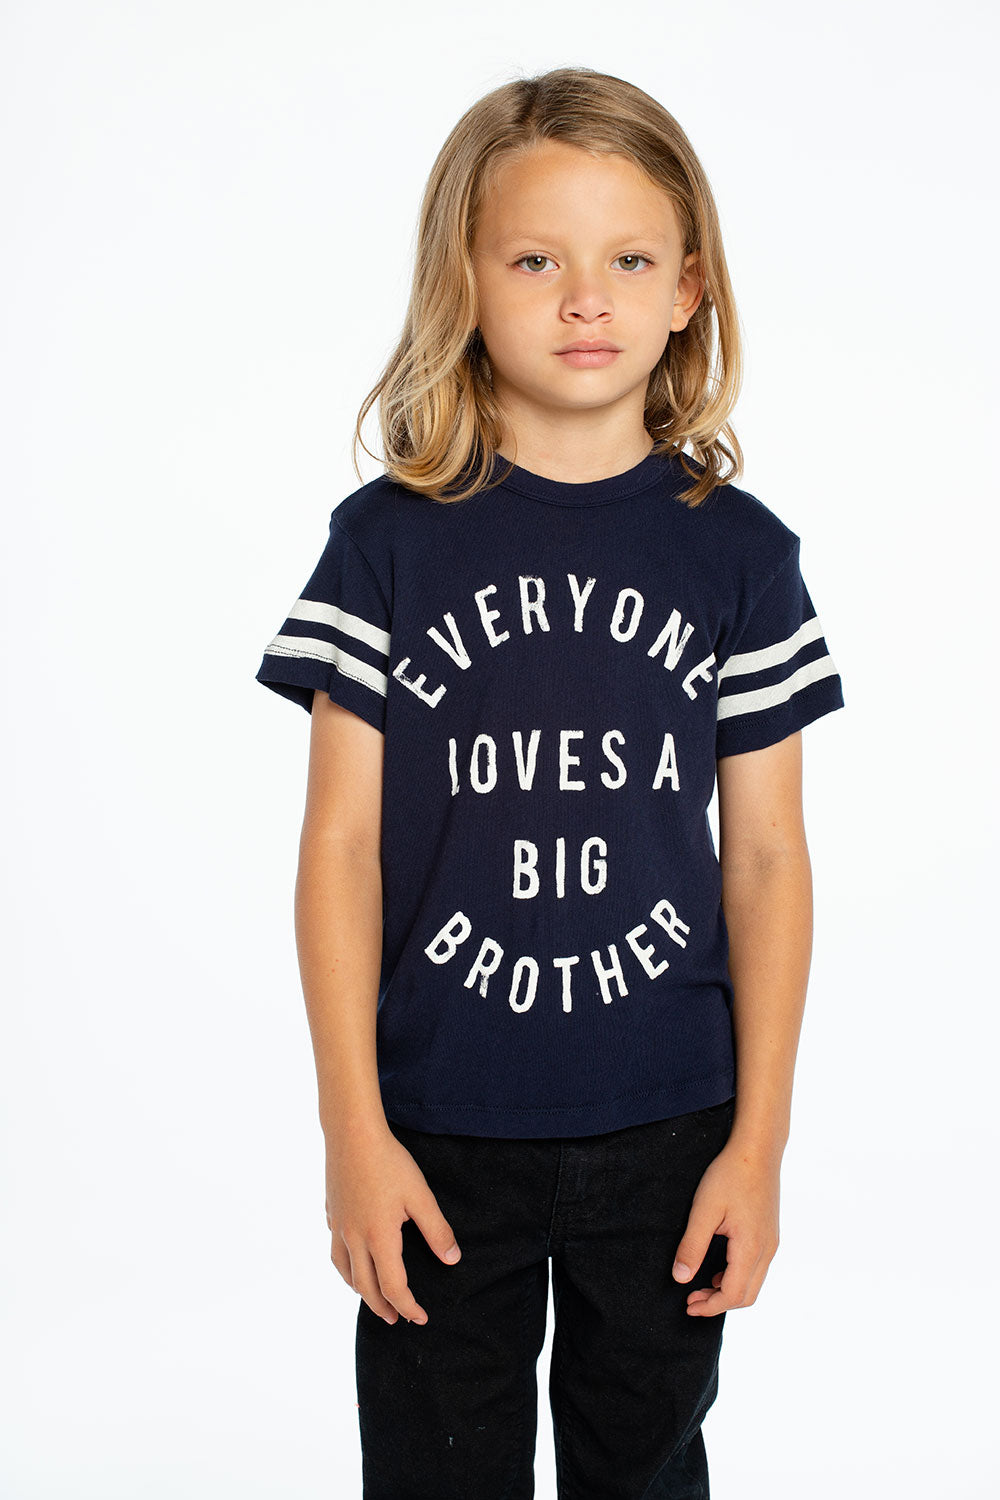 Best Big Bro, BOYS, chaserbrand.com,chaser clothing,chaser apparel,chaser los angeles